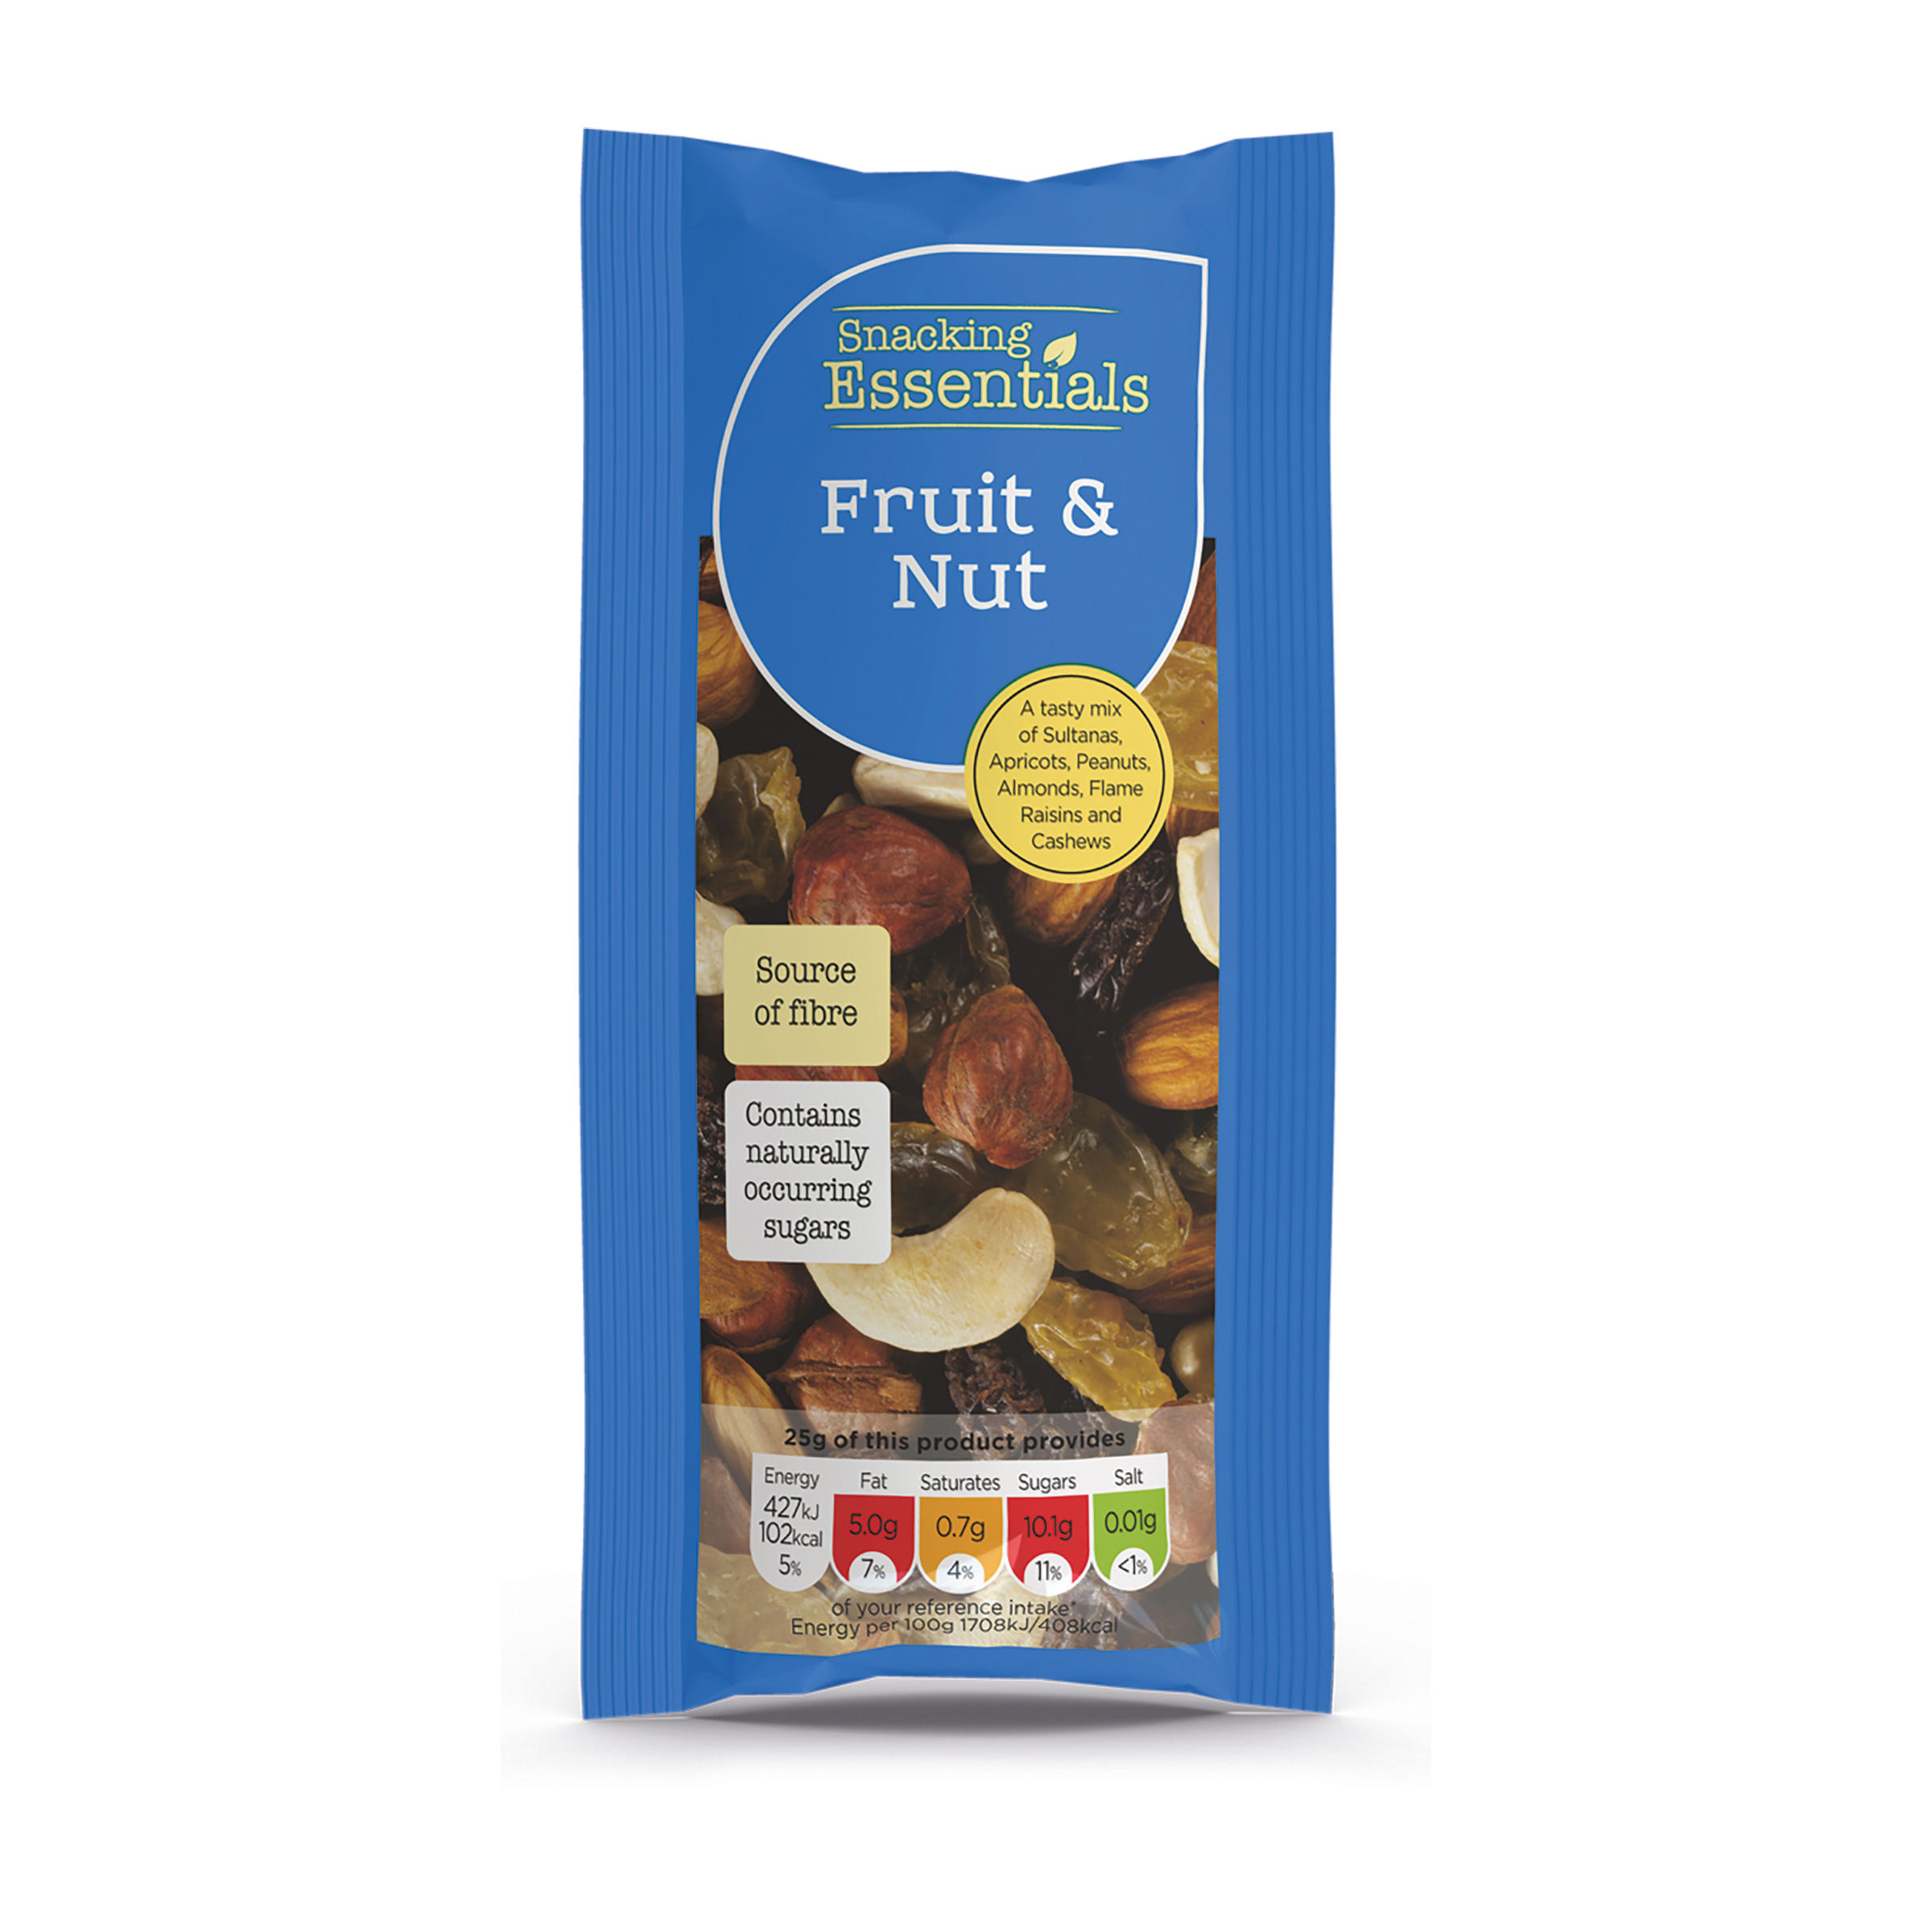 Snacking Essentials Fruit & Nut 50g Ref 808251 [Pack 16]